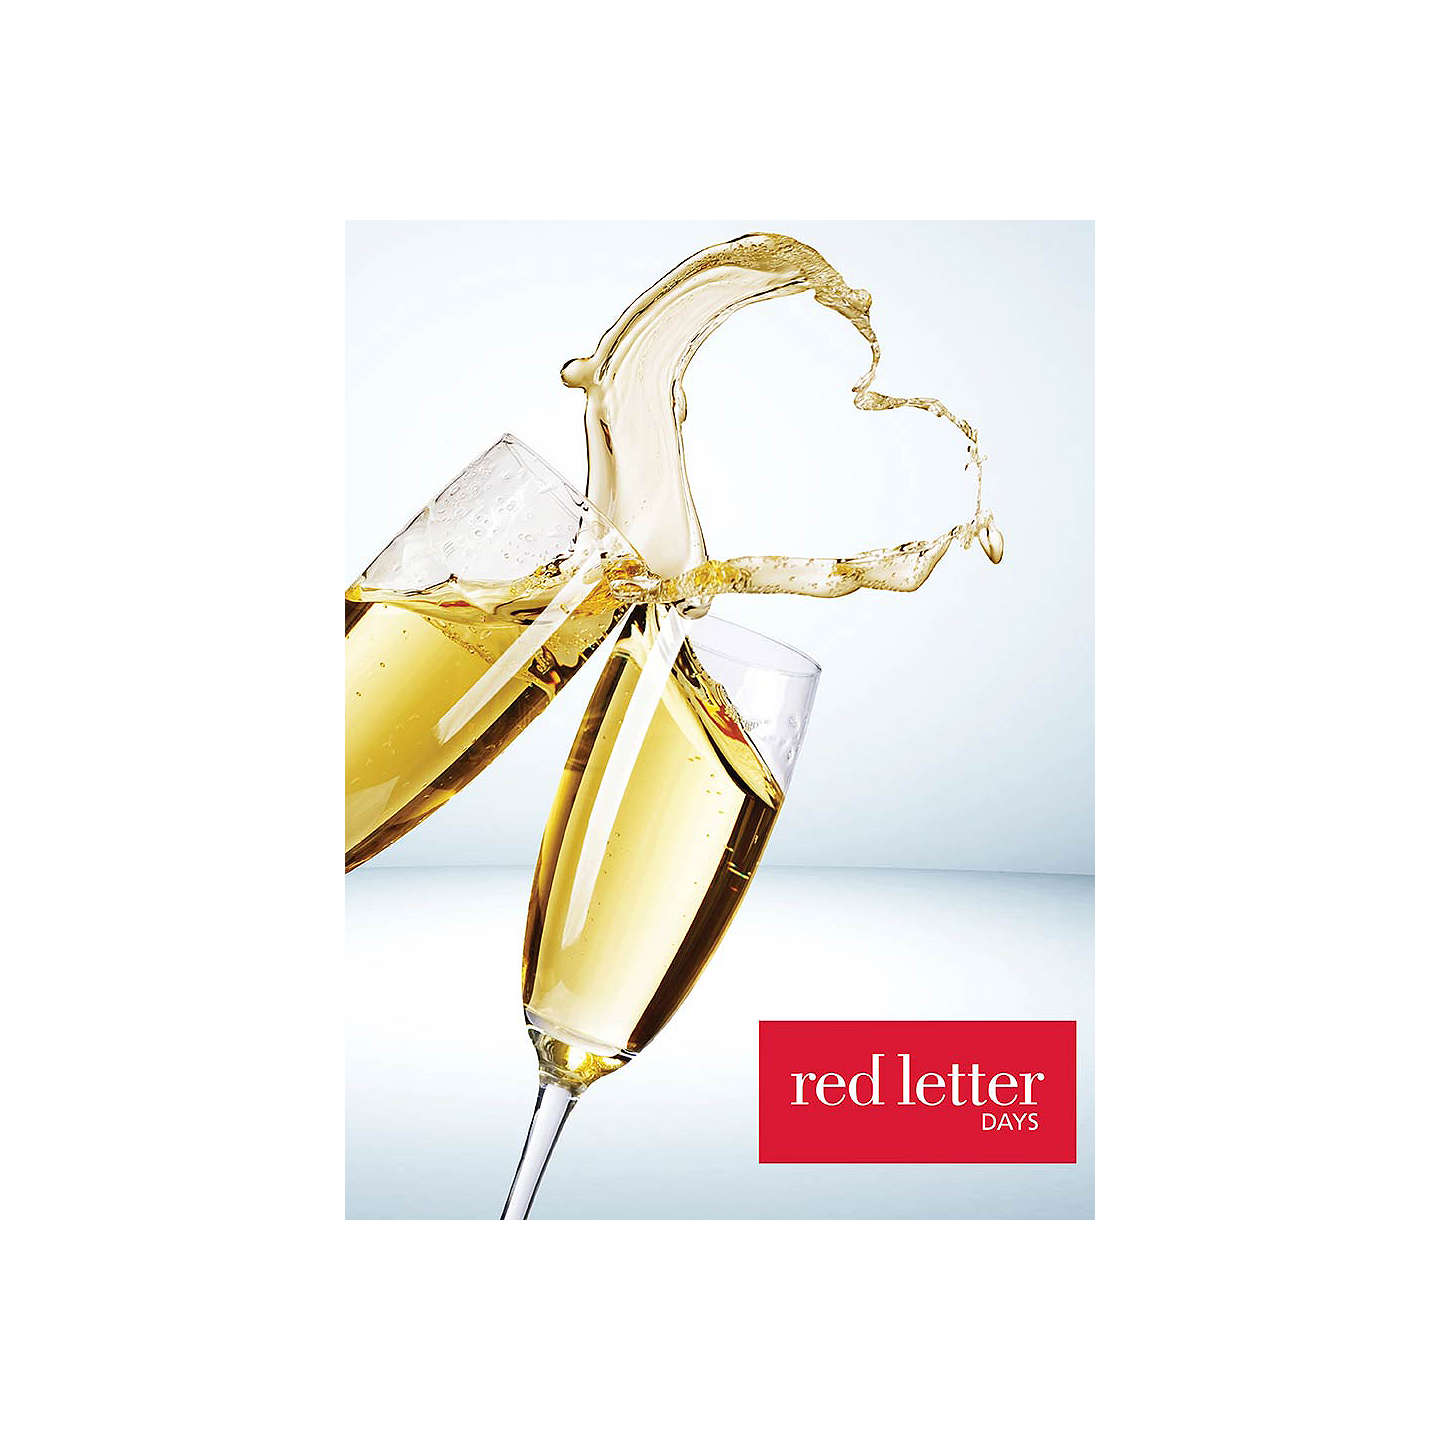 John Lewis Gift List Wedding: Red Letter Days Congratulations Wedding £100 Gift Card At